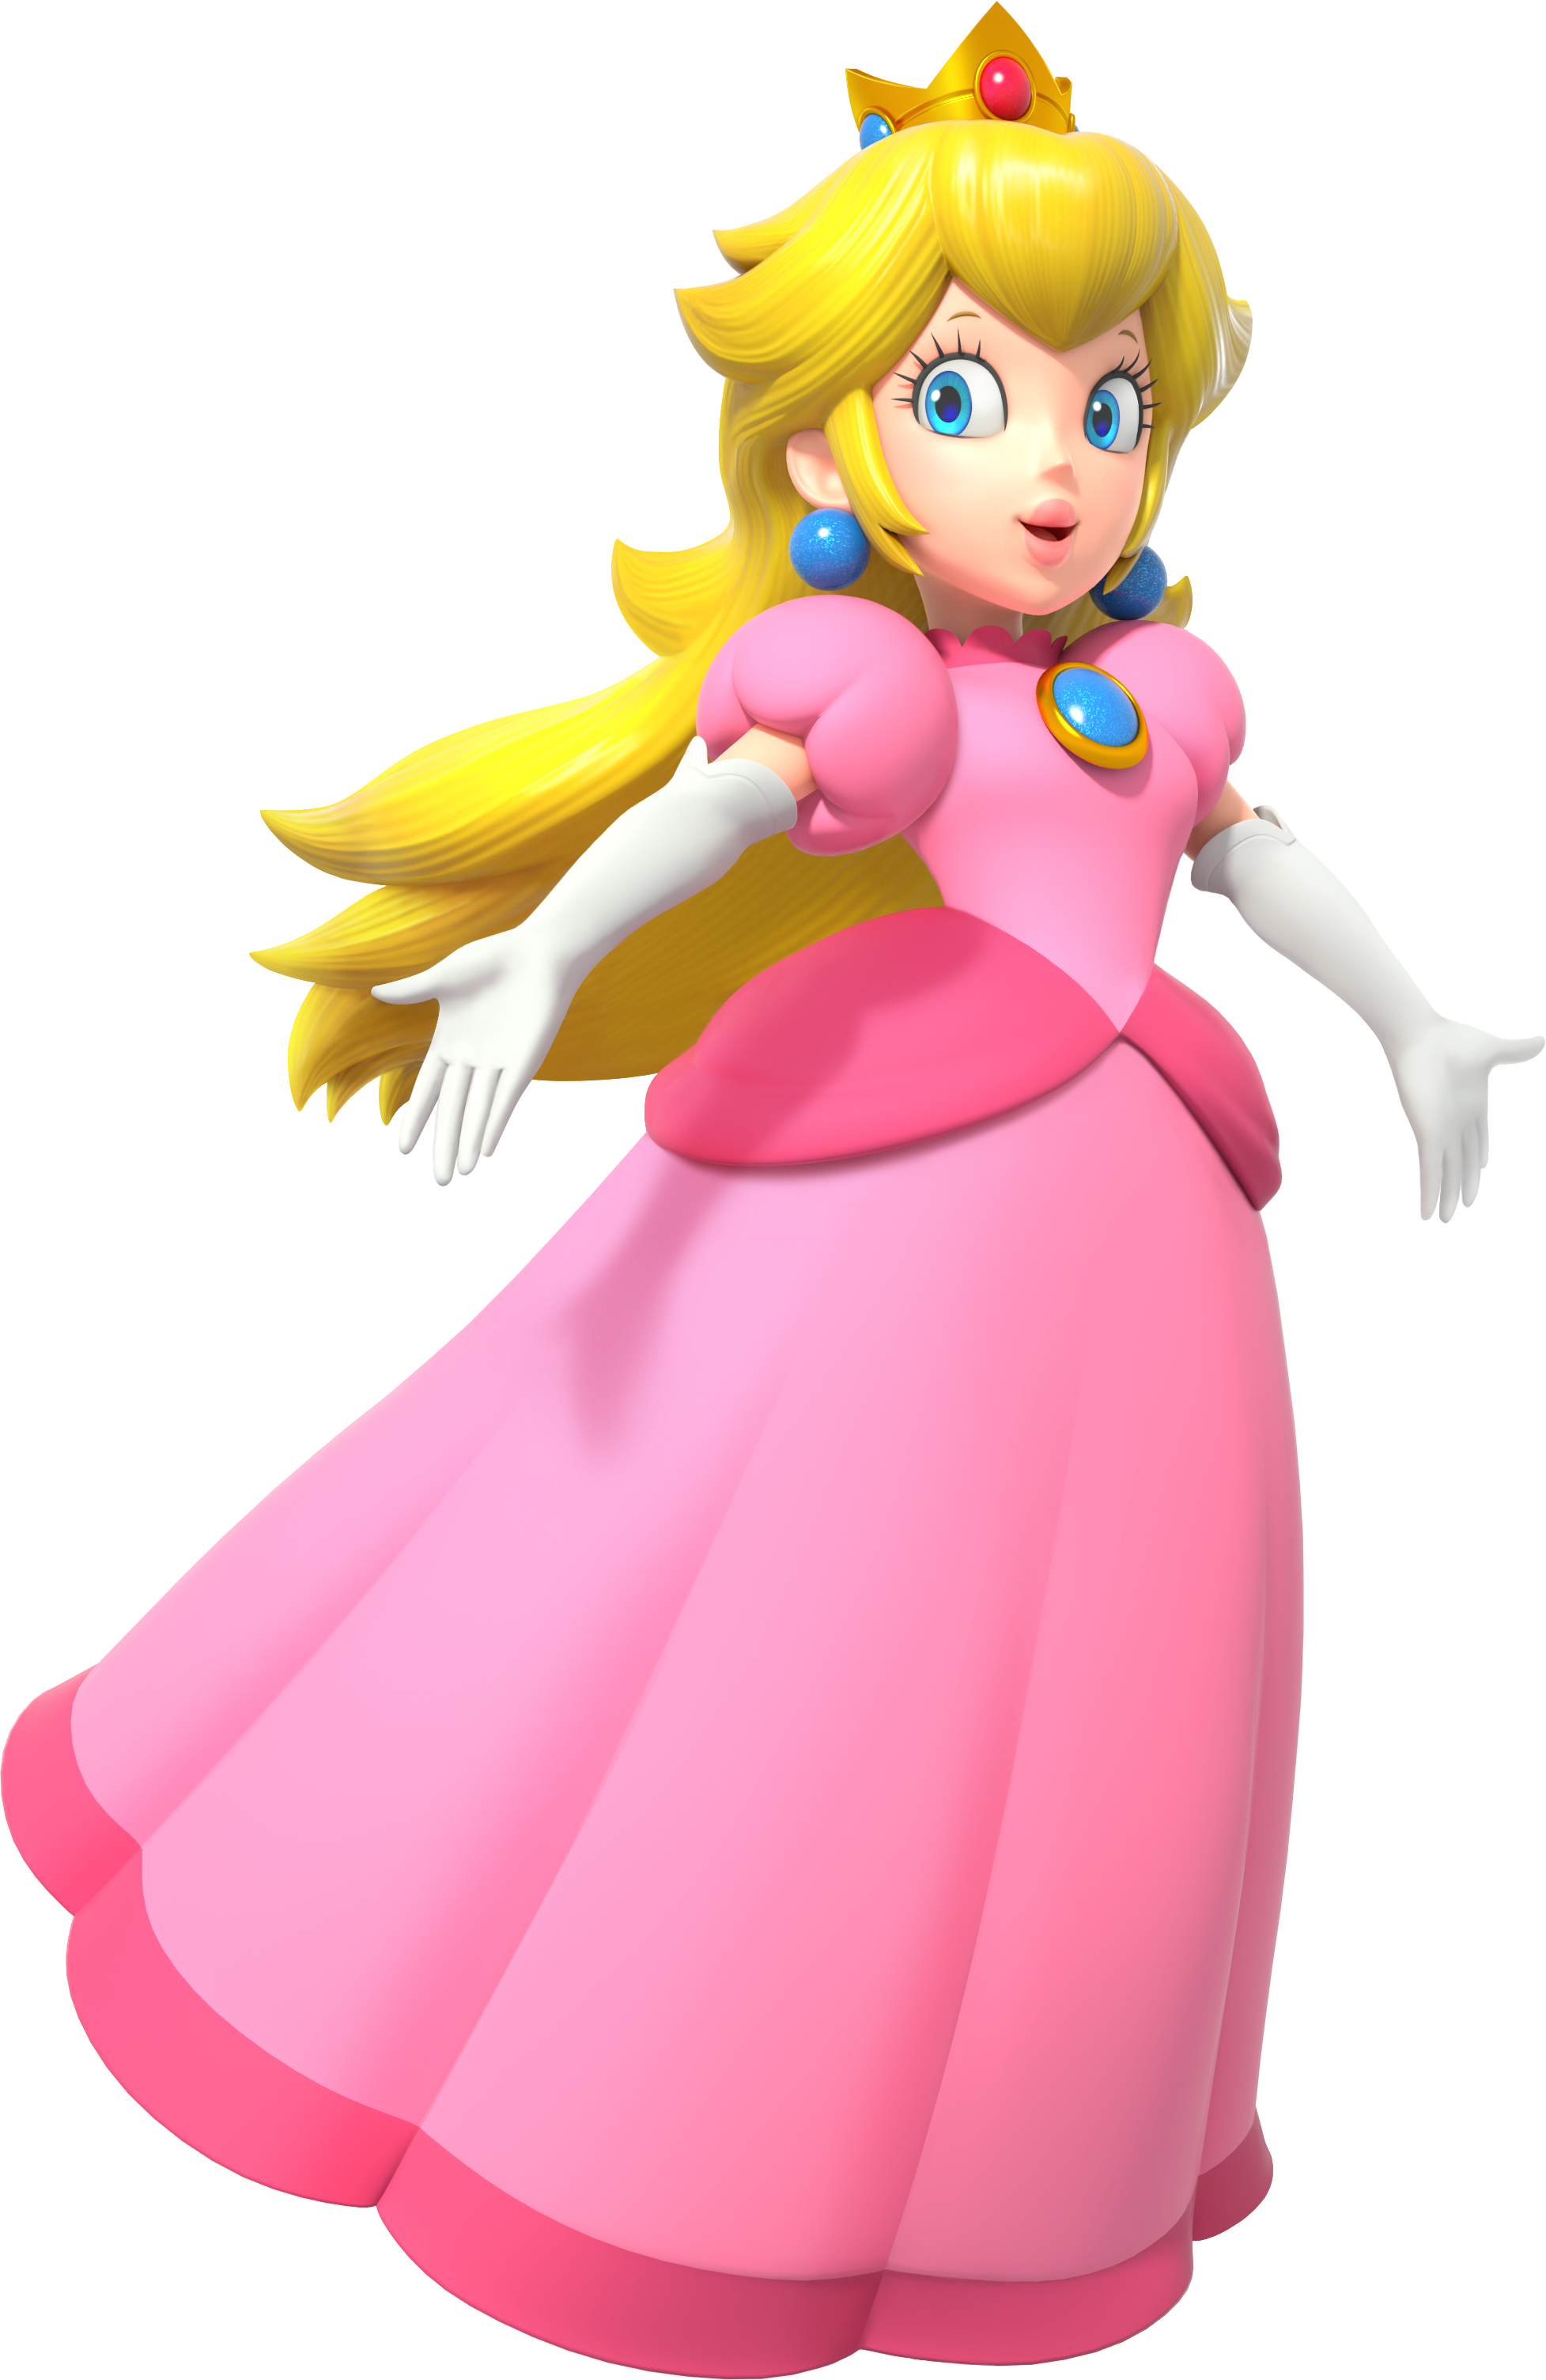 Clipart princess crown and wand clipart stock Princess Peach | Nintendo | FANDOM powered by Wikia clipart stock